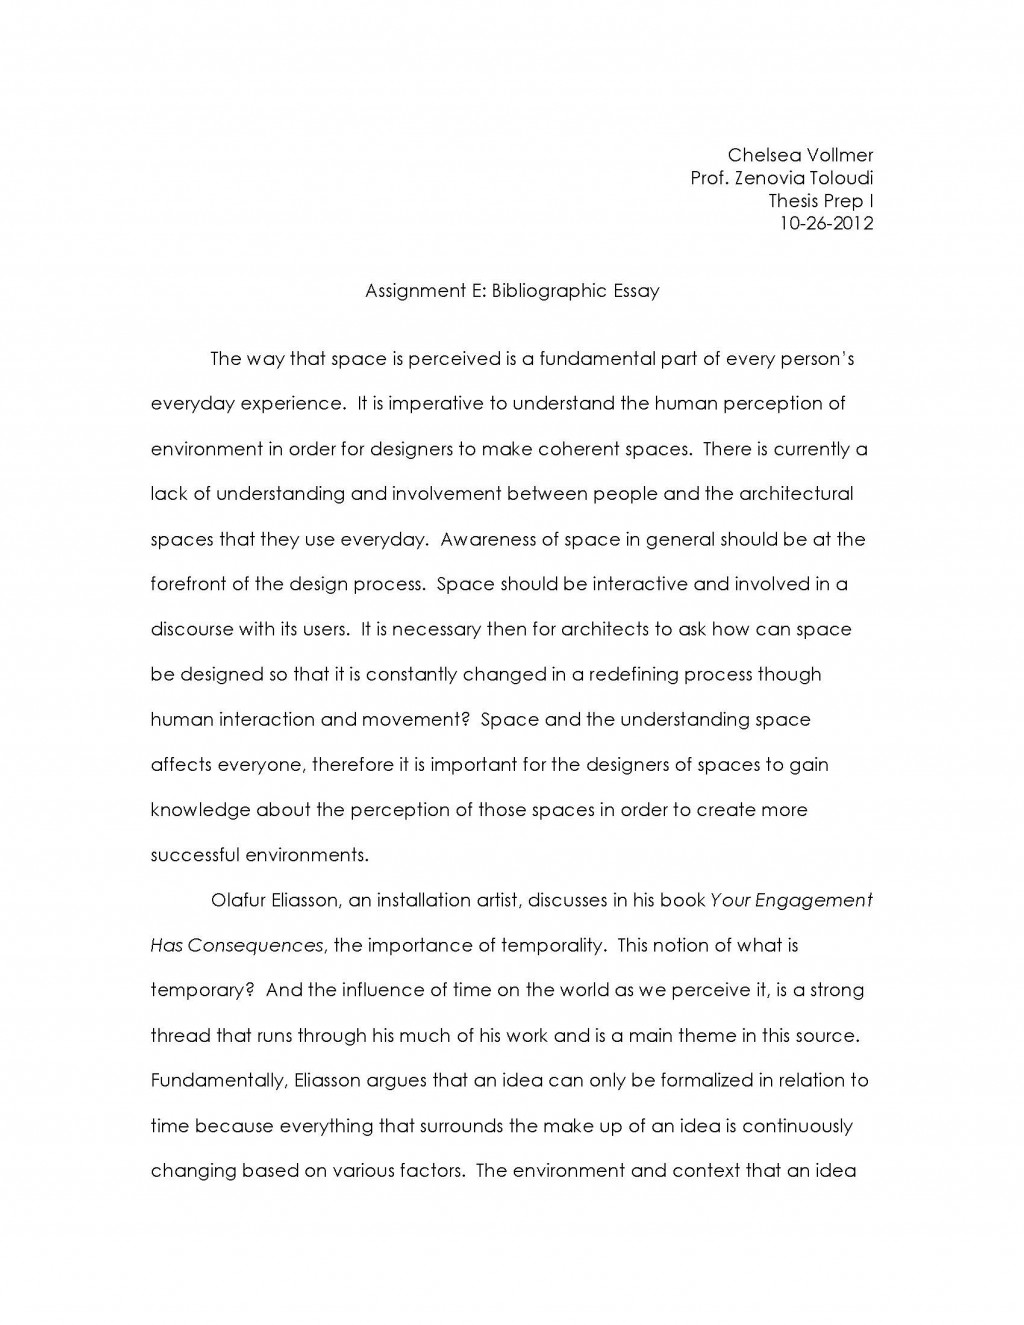 016 Assignment E Page 12 Essay Example Human Impact On The Environment Impressive Topics Large